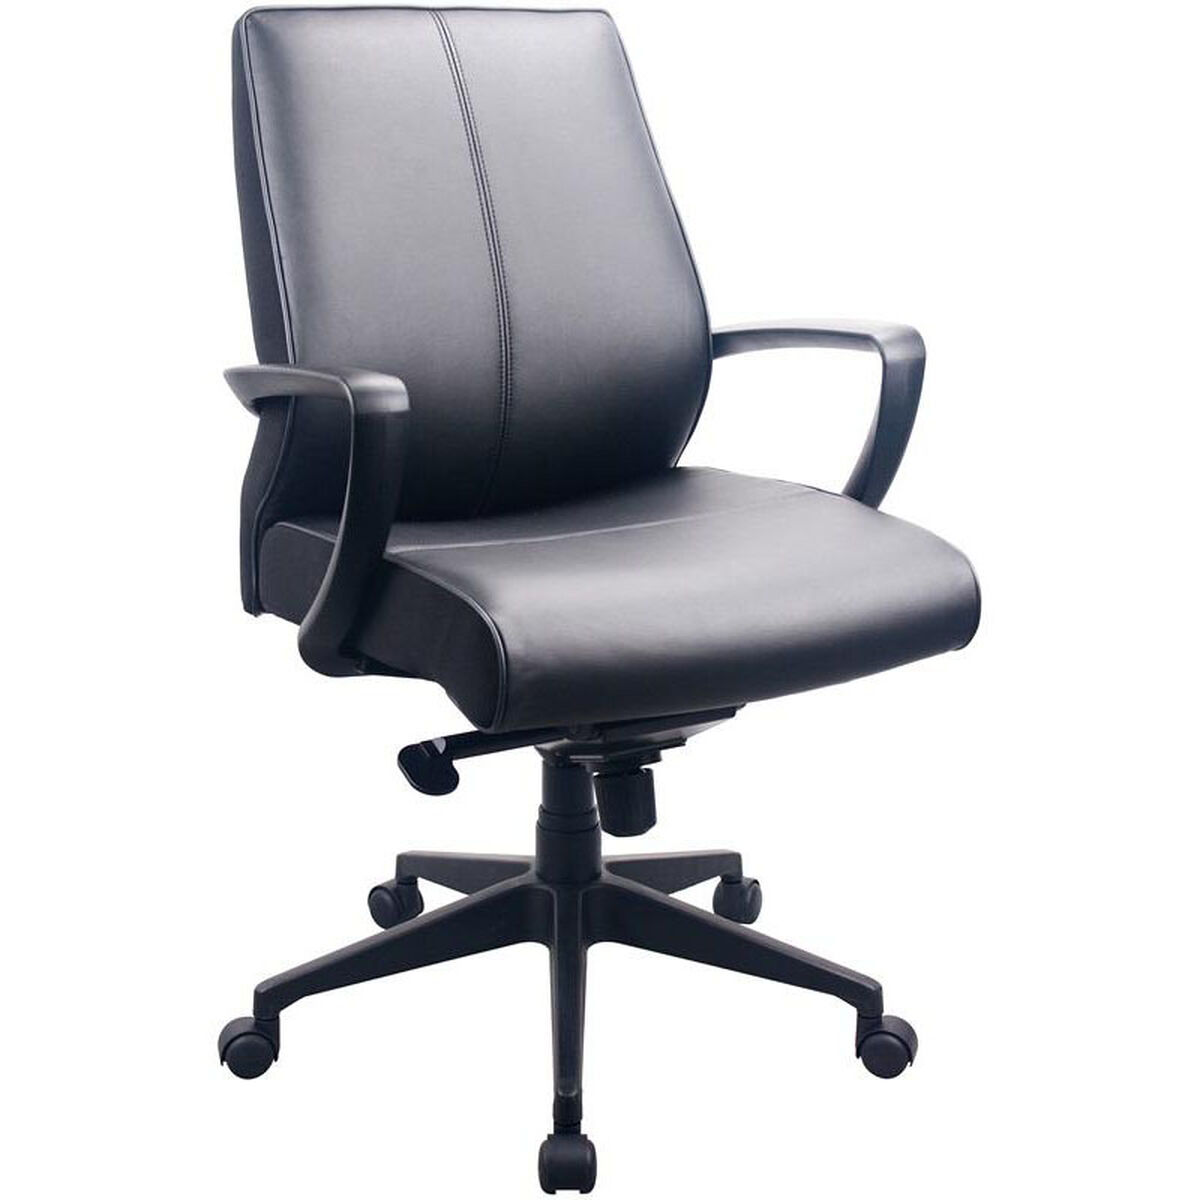 Our Tempur Pedic Reg Leather Mid Back Chair Black Is On